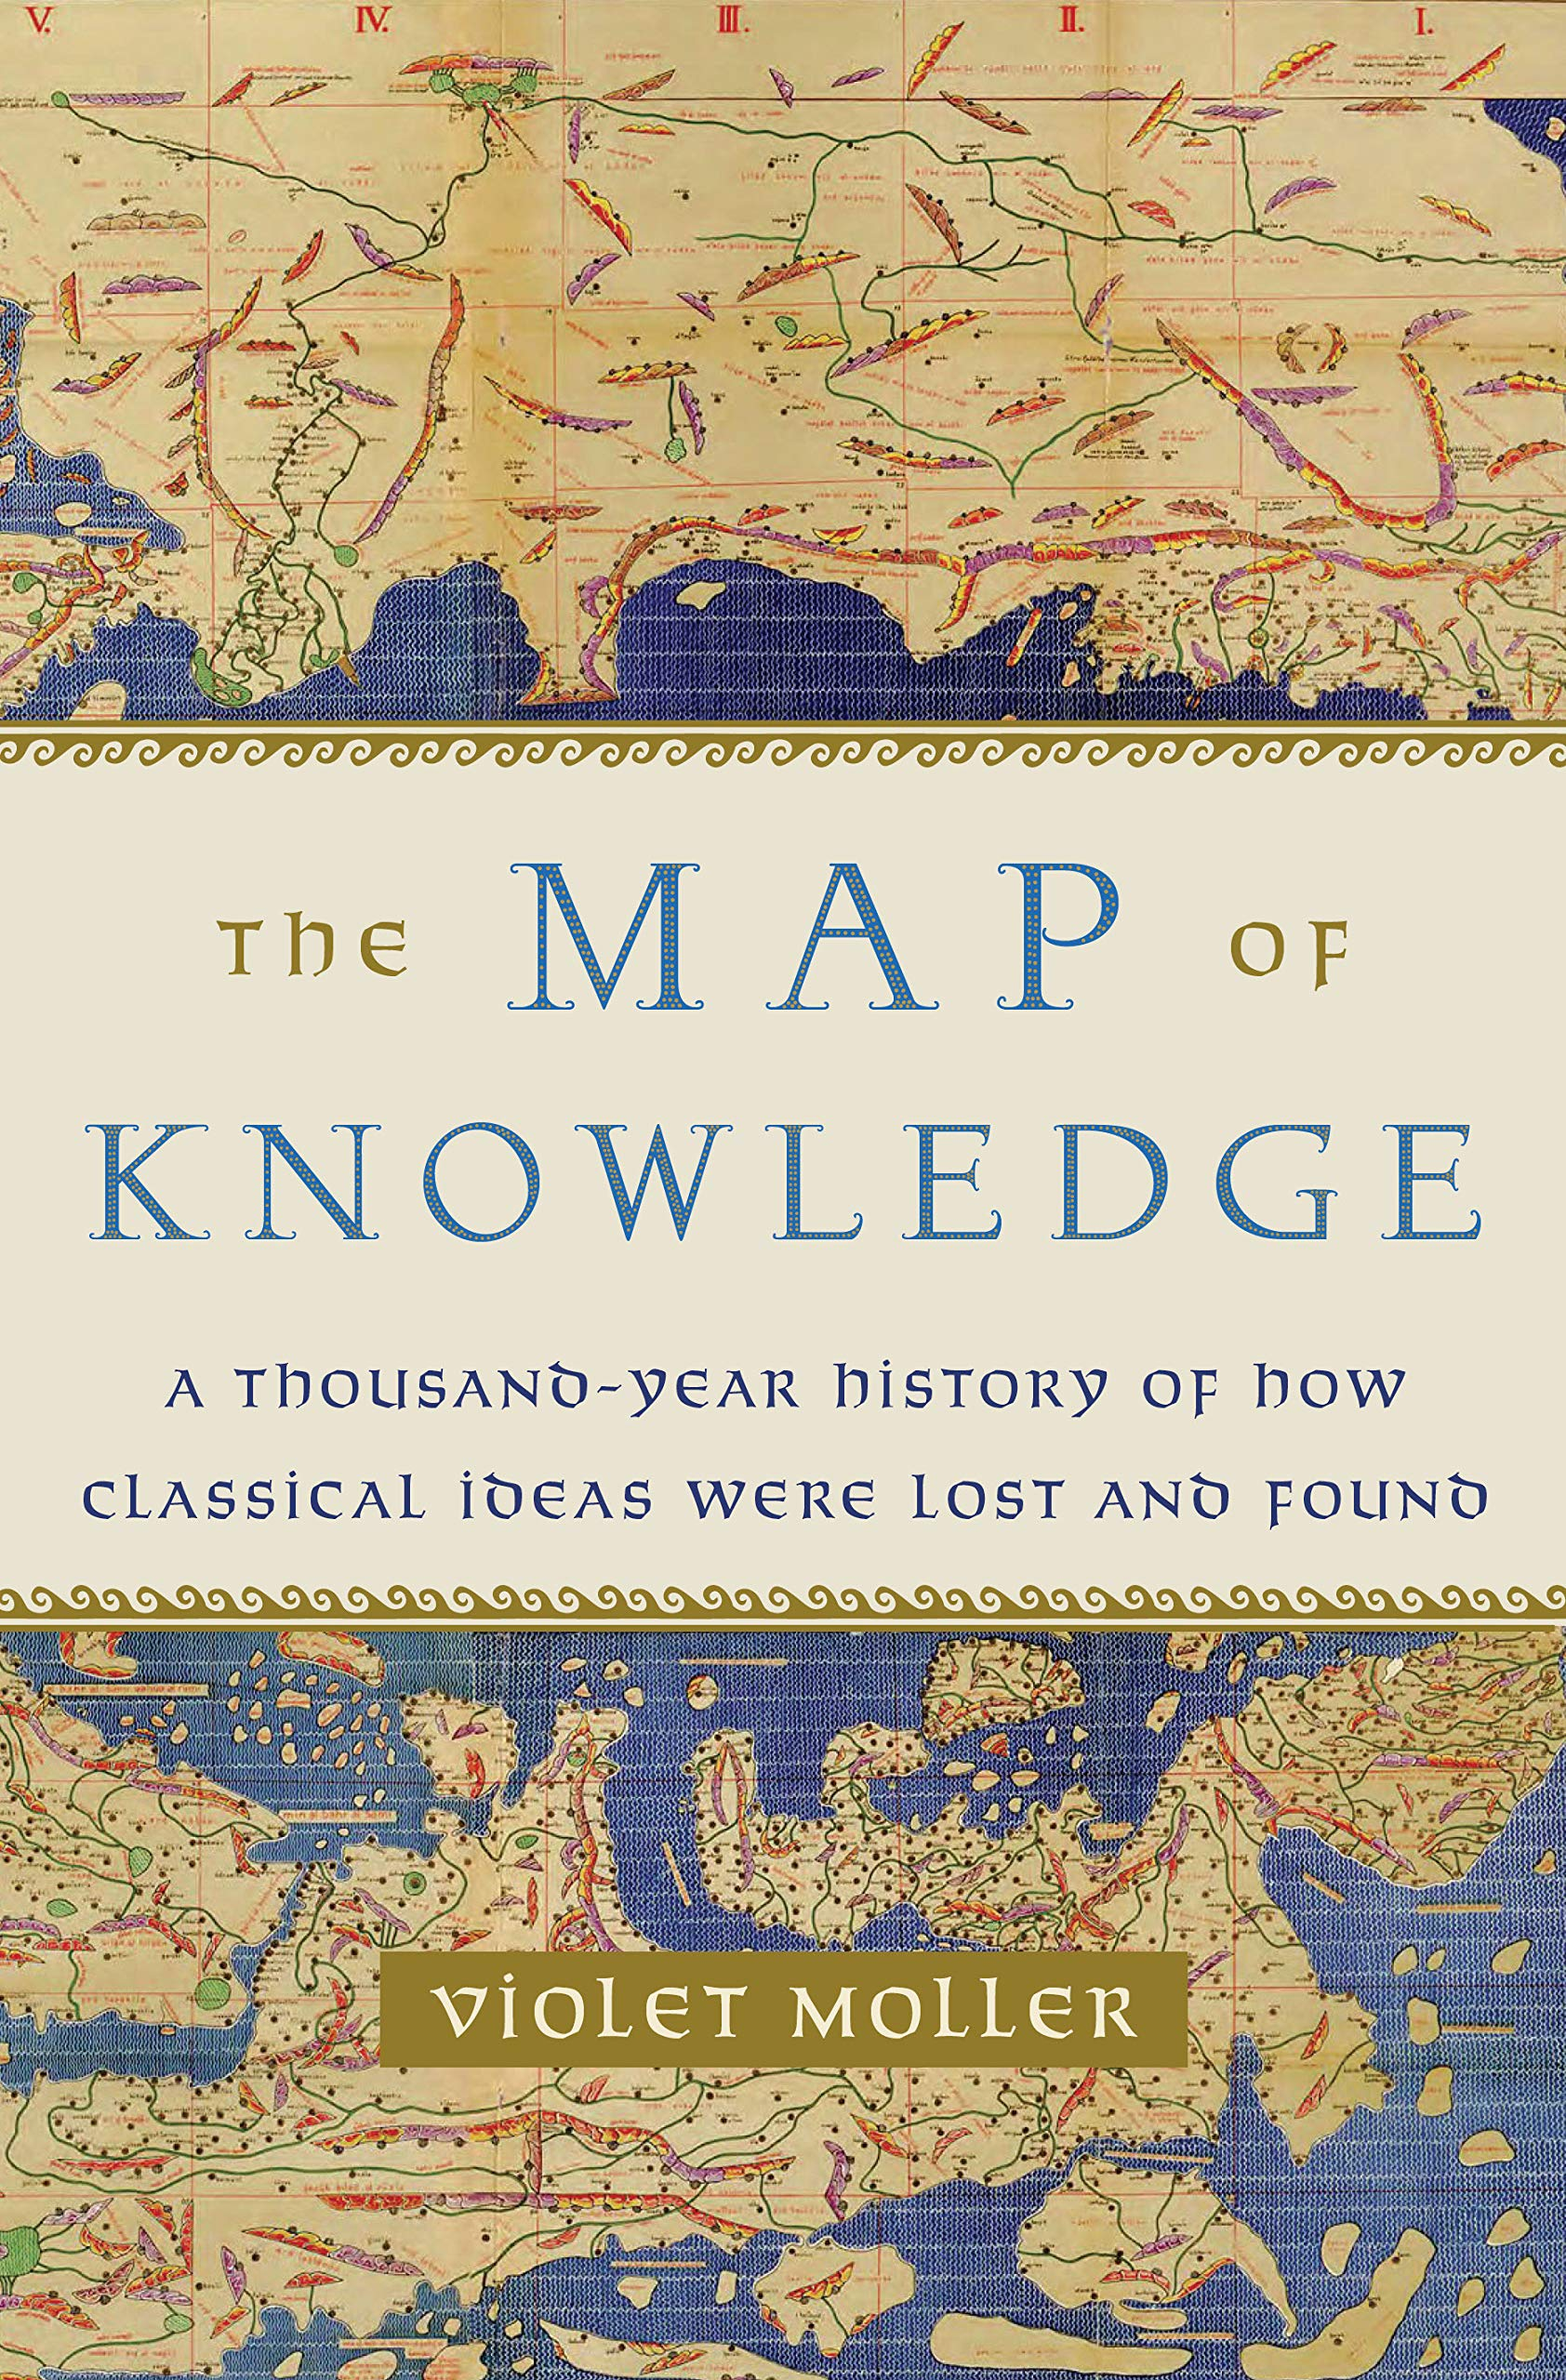 The Map of Knowledge: A Thousand-Year History of How ... Map History on united states map, history articles, history label, asia map, history text, hawaii map, national park map, history culture, topographical map, travel map, middle east map, lake map, history jobs, history search, history about european explorers, history education, flat map, history globe, park map, history review, history information, history film, history paper, history dictionary, history geography, history flowcharts, history food, site map, history school, history clock, exploration map, vision map, history of it, mexico map, america map, history research, peak map, scotland map,